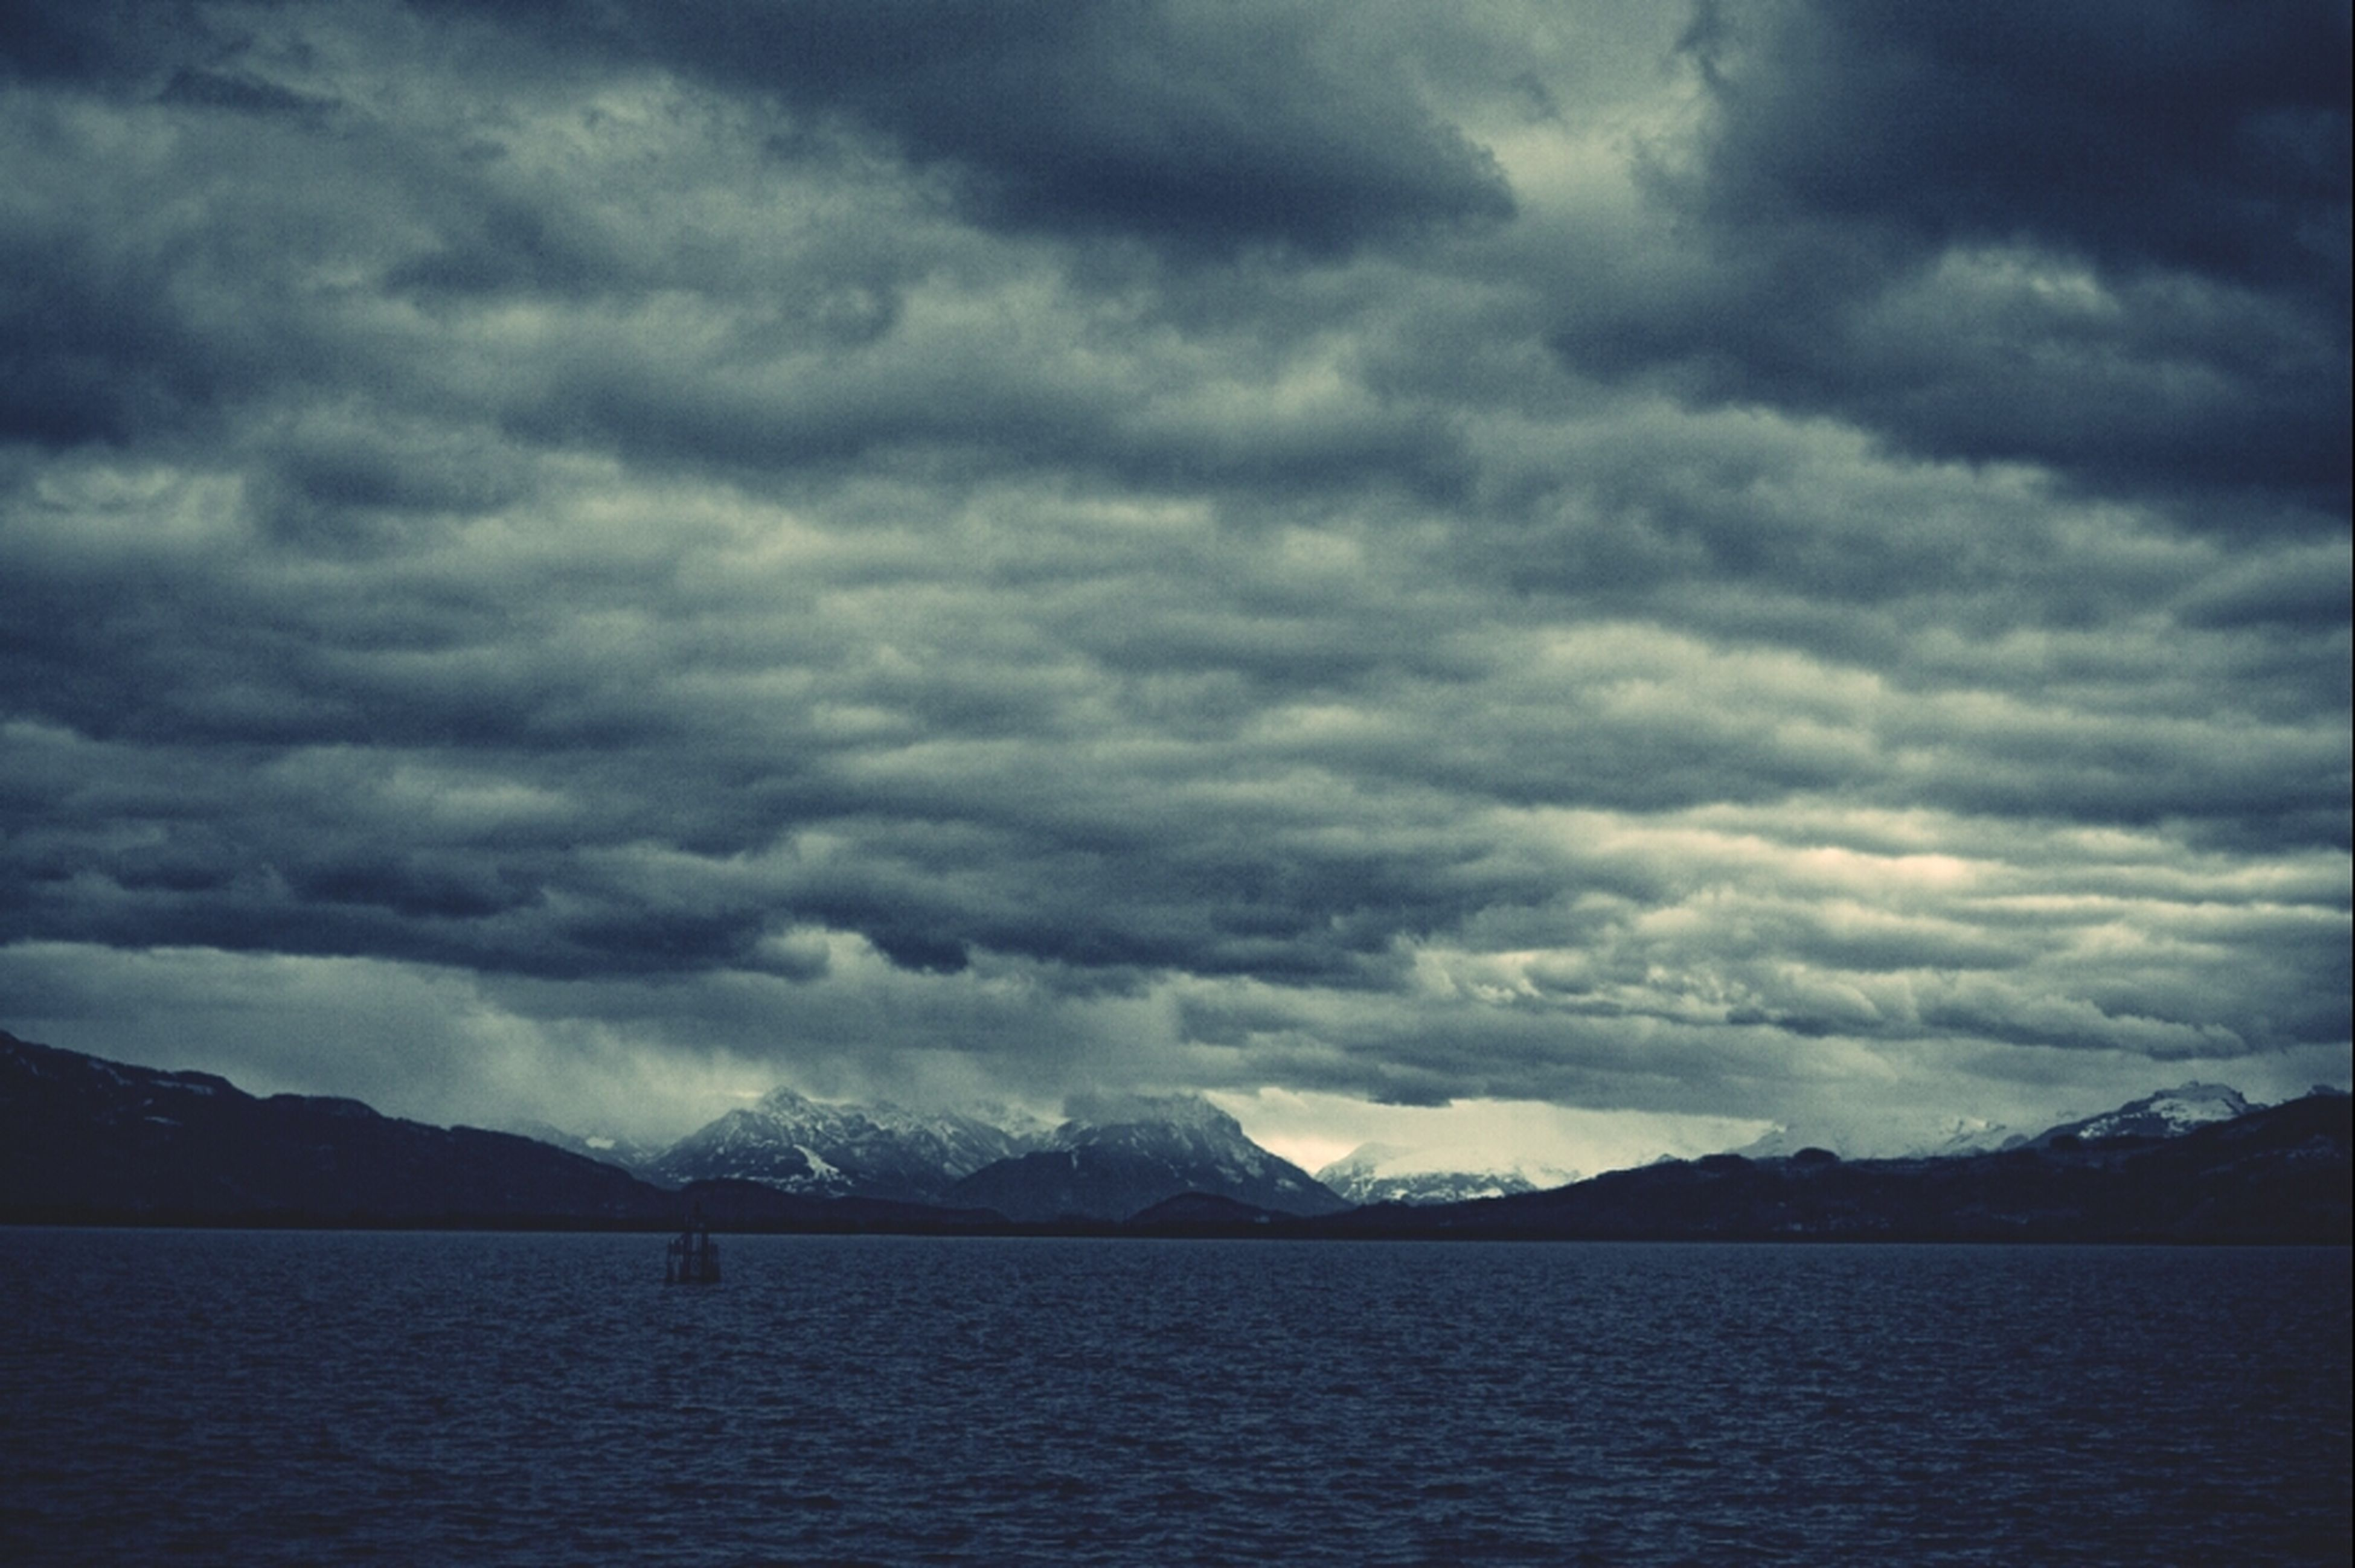 mountain, sky, tranquil scene, scenics, water, mountain range, tranquility, cloud - sky, beauty in nature, cloudy, waterfront, lake, nature, weather, cloud, idyllic, overcast, river, non-urban scene, outdoors